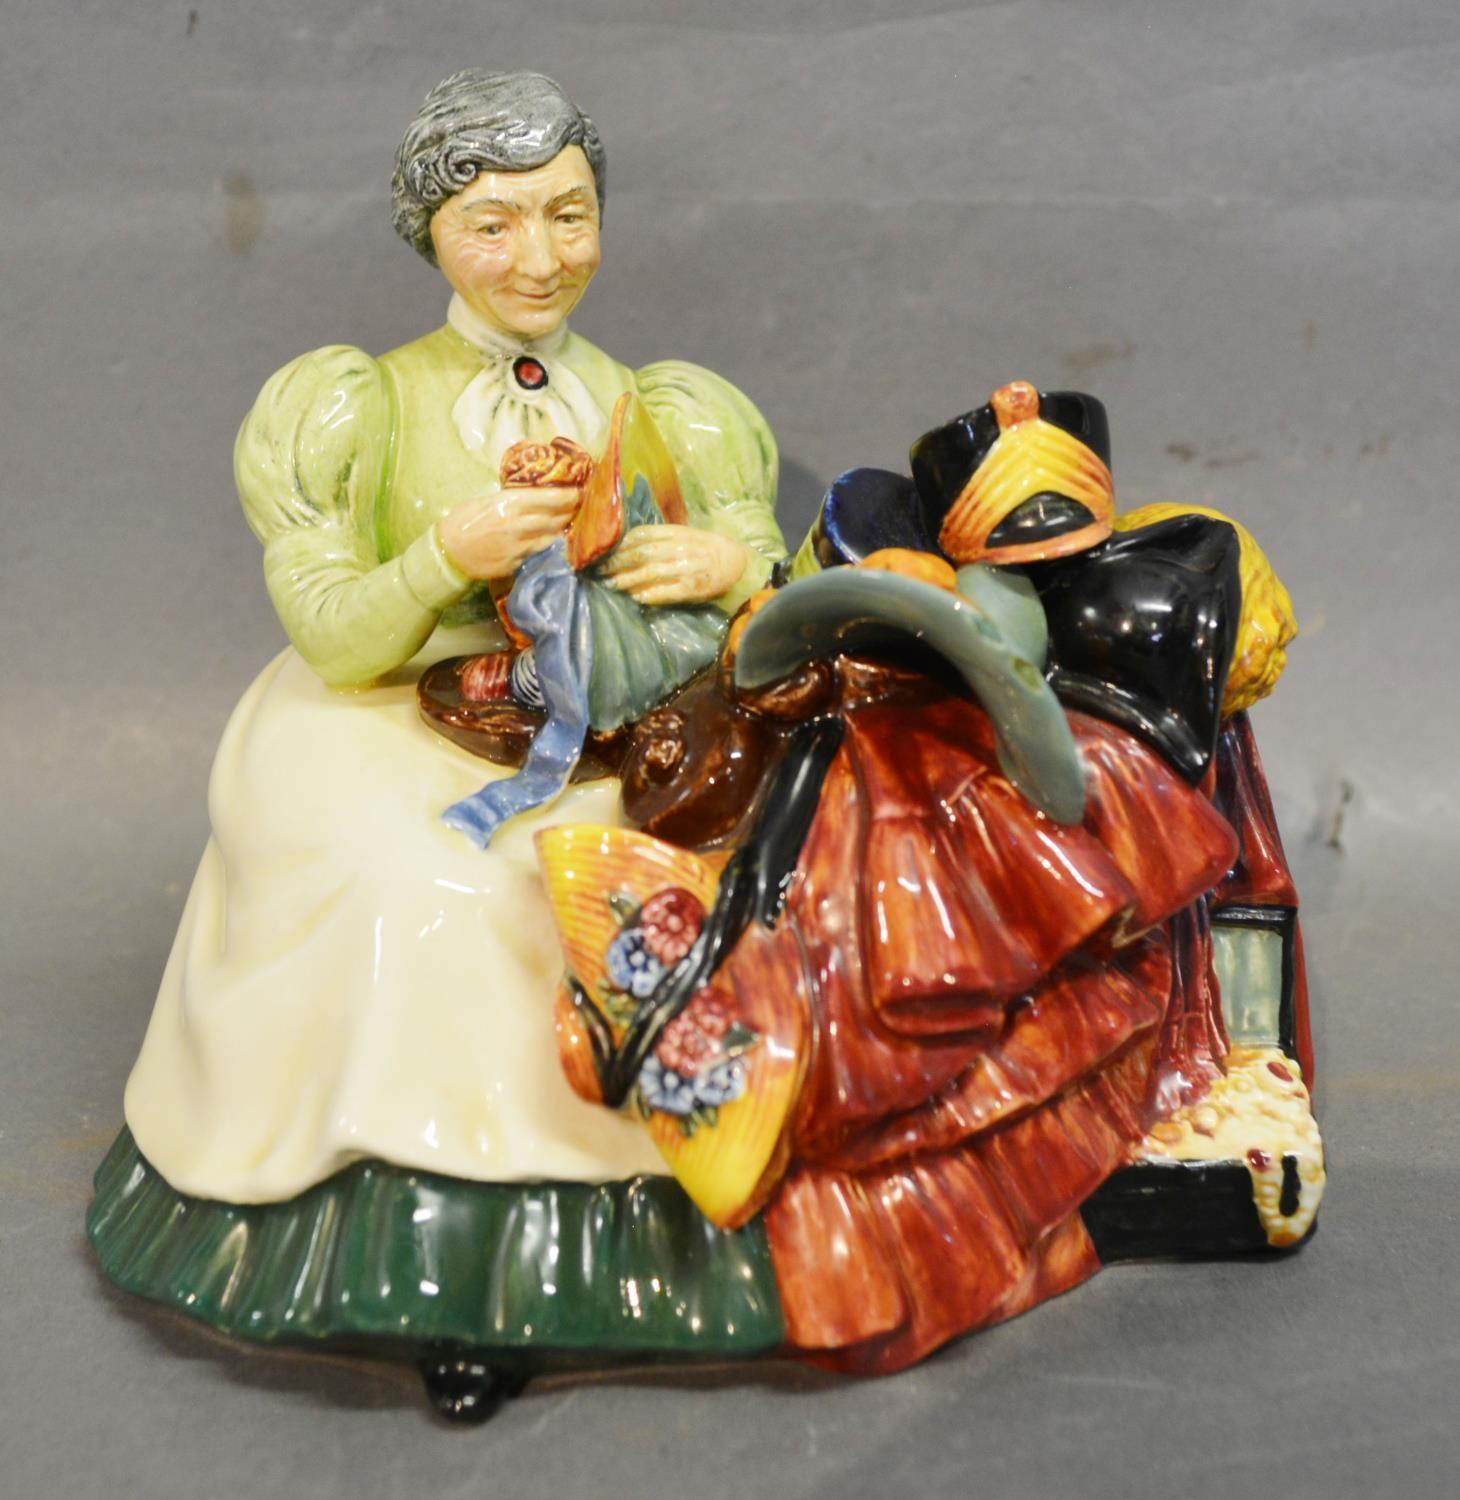 Lot 3 - A Royal Doulton Figure 'The Wardrobe Mistress' HN Number 2145